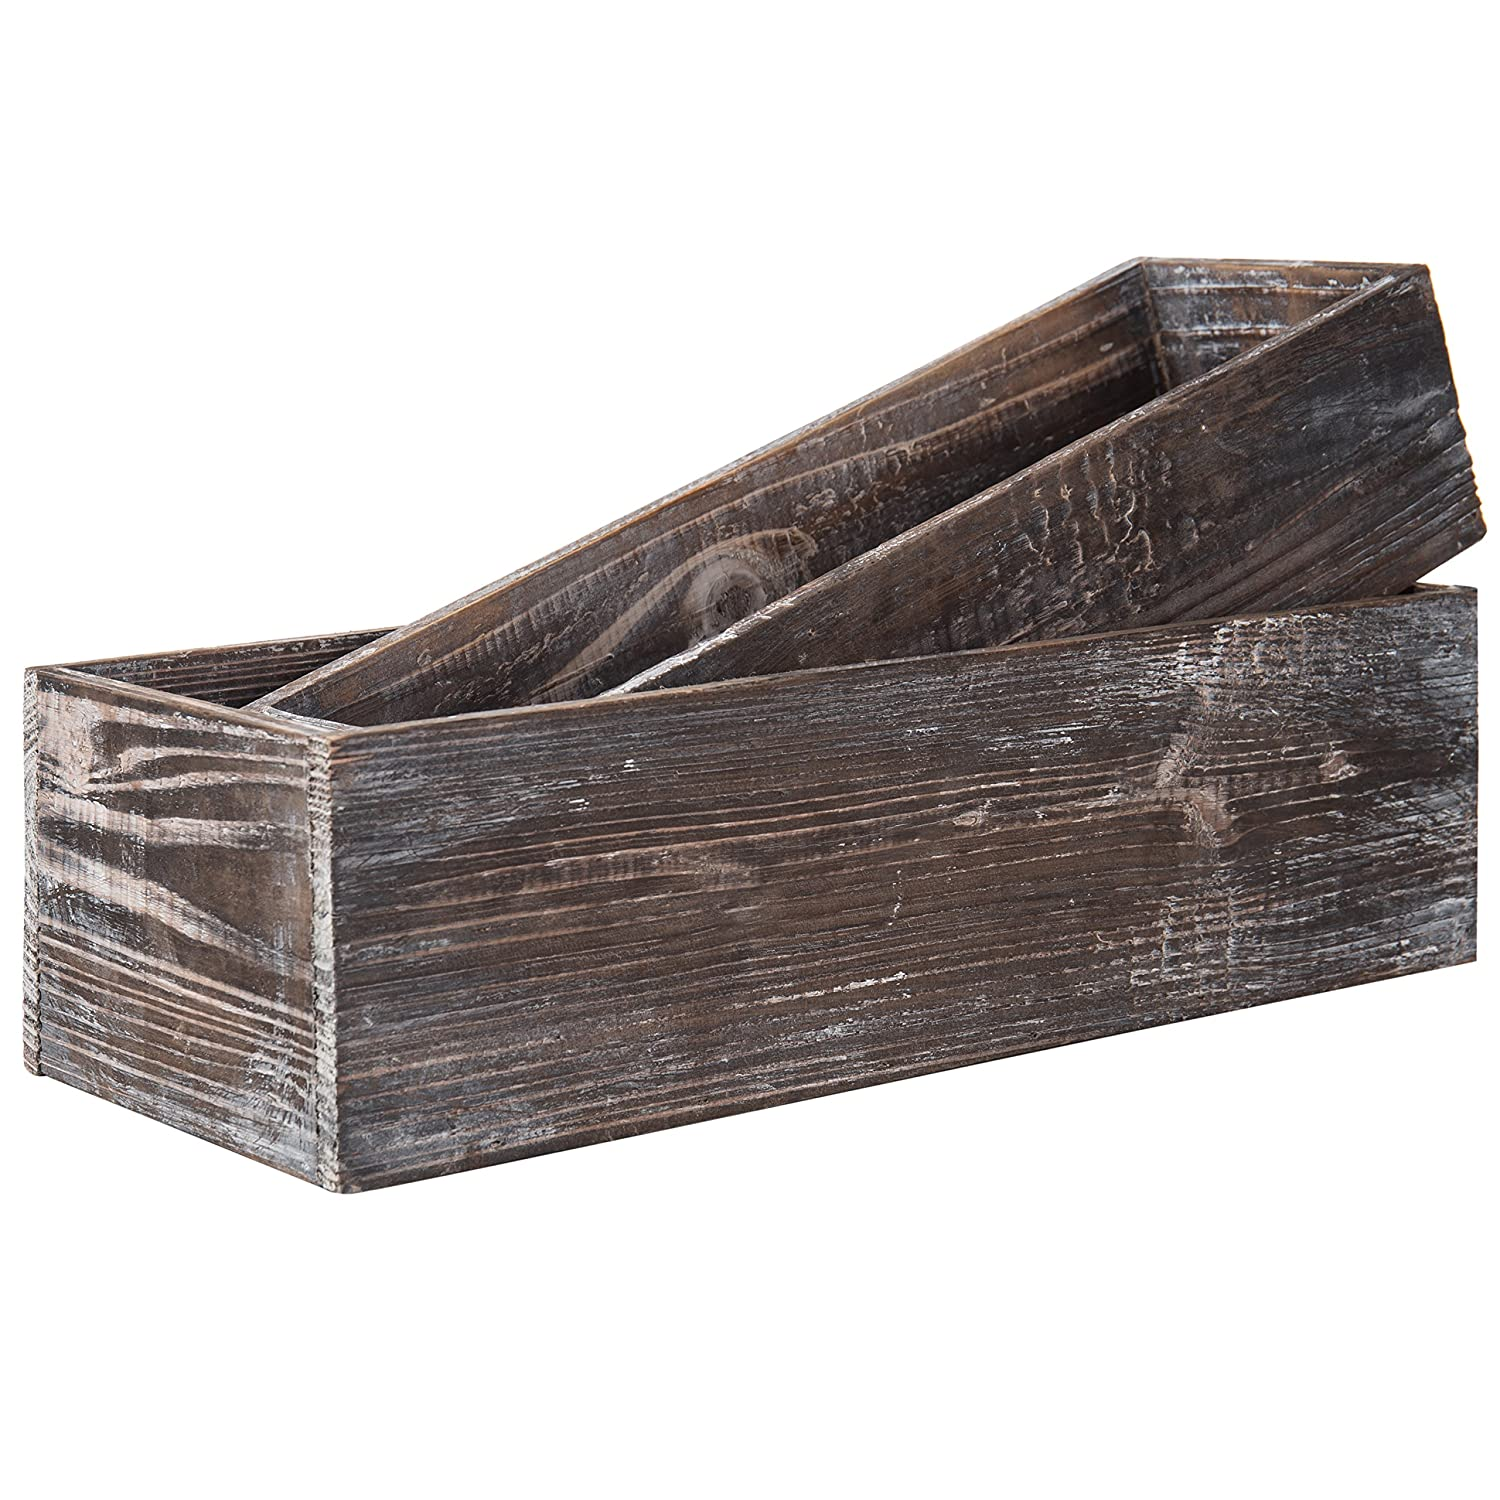 MyGift Country Rustic Brown Wood Nesting Succulent Planters, Windowsill Flower Pots, 2-Piece Set